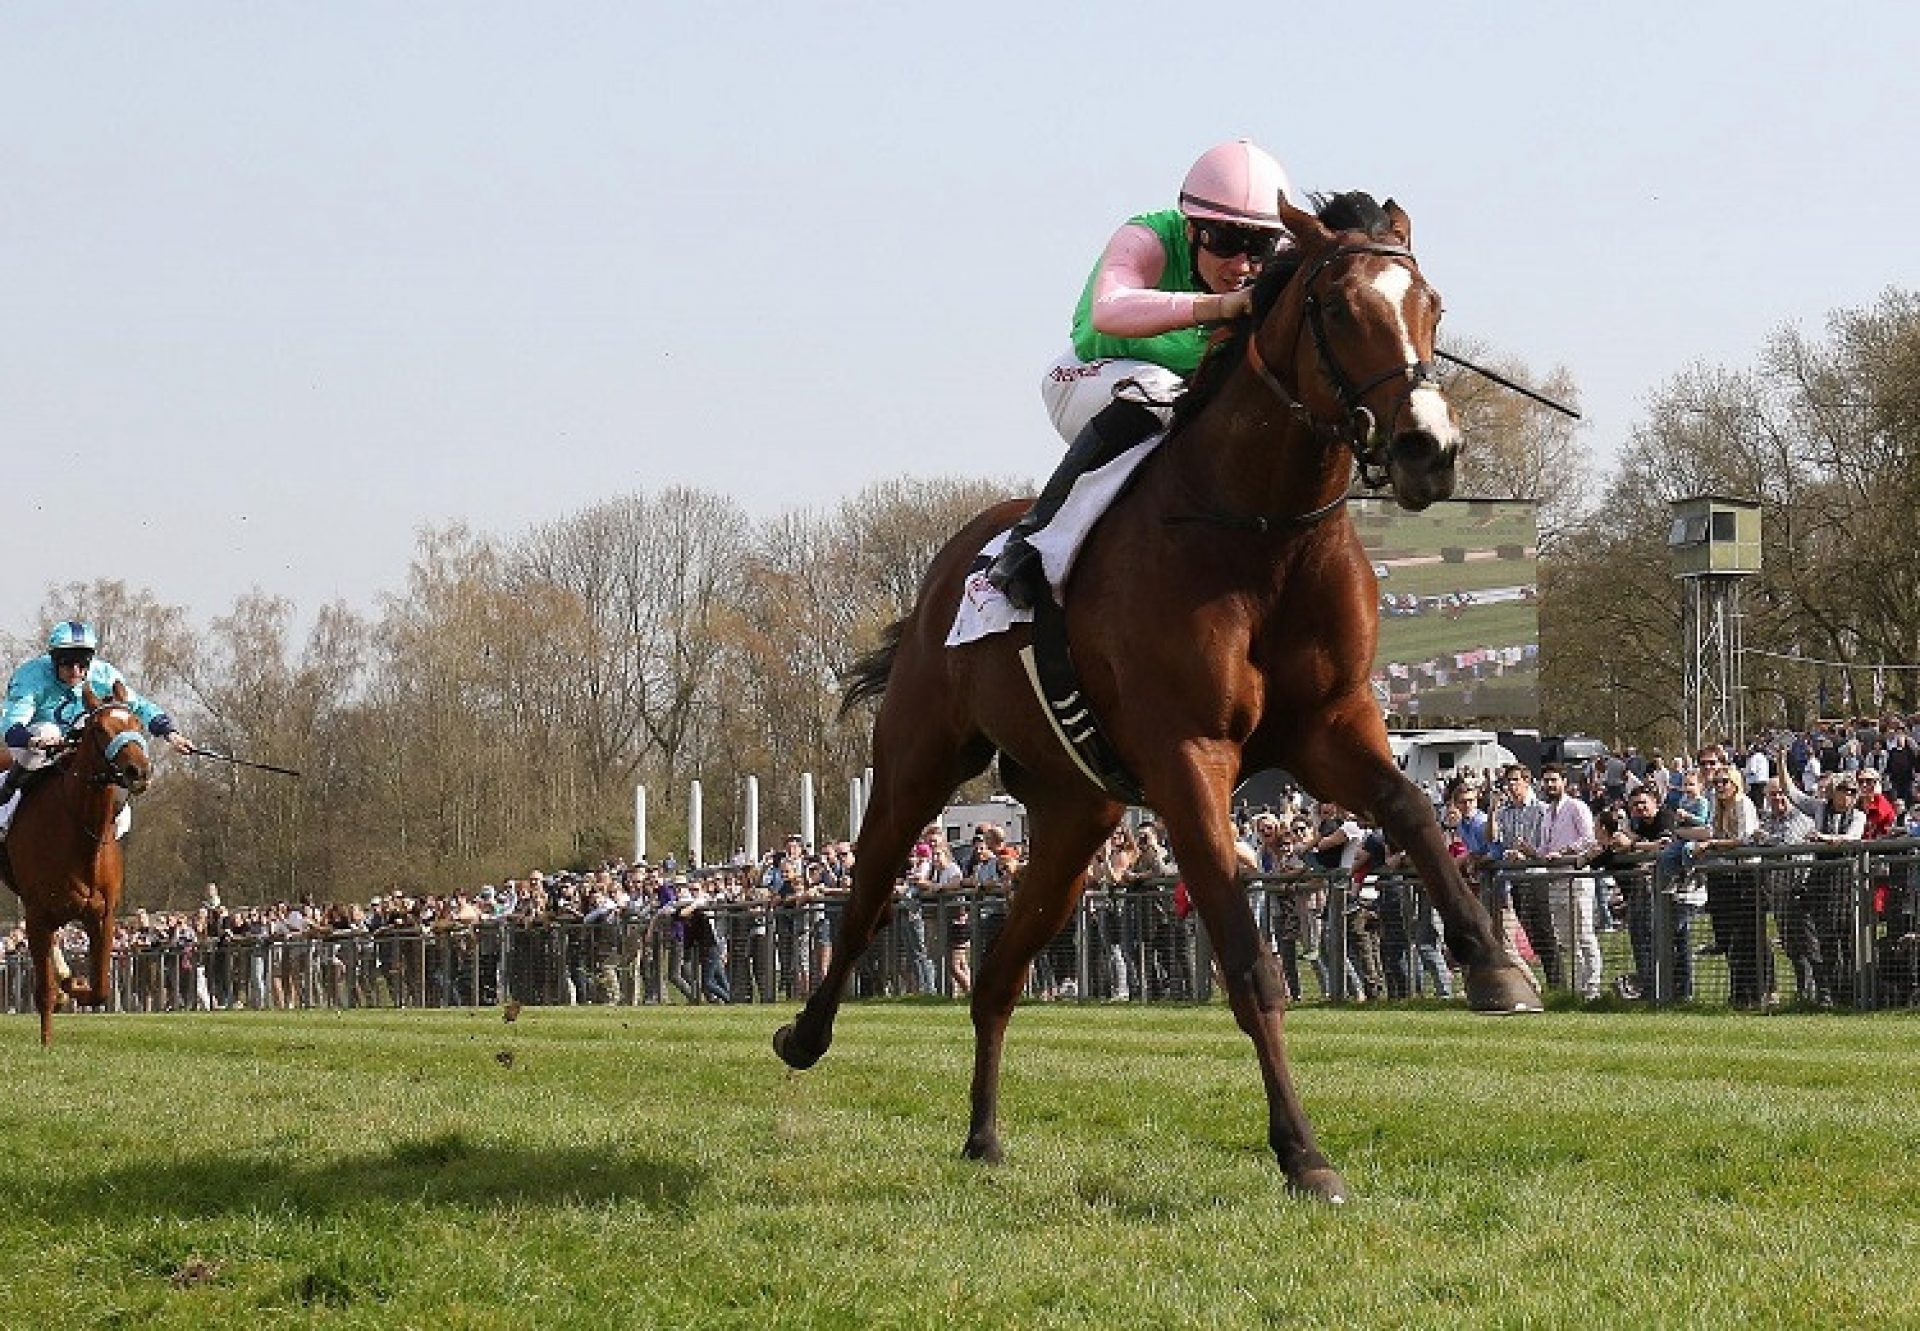 Alounak (Camelot) winning the Listed German Derby Trial at Dusseldorf